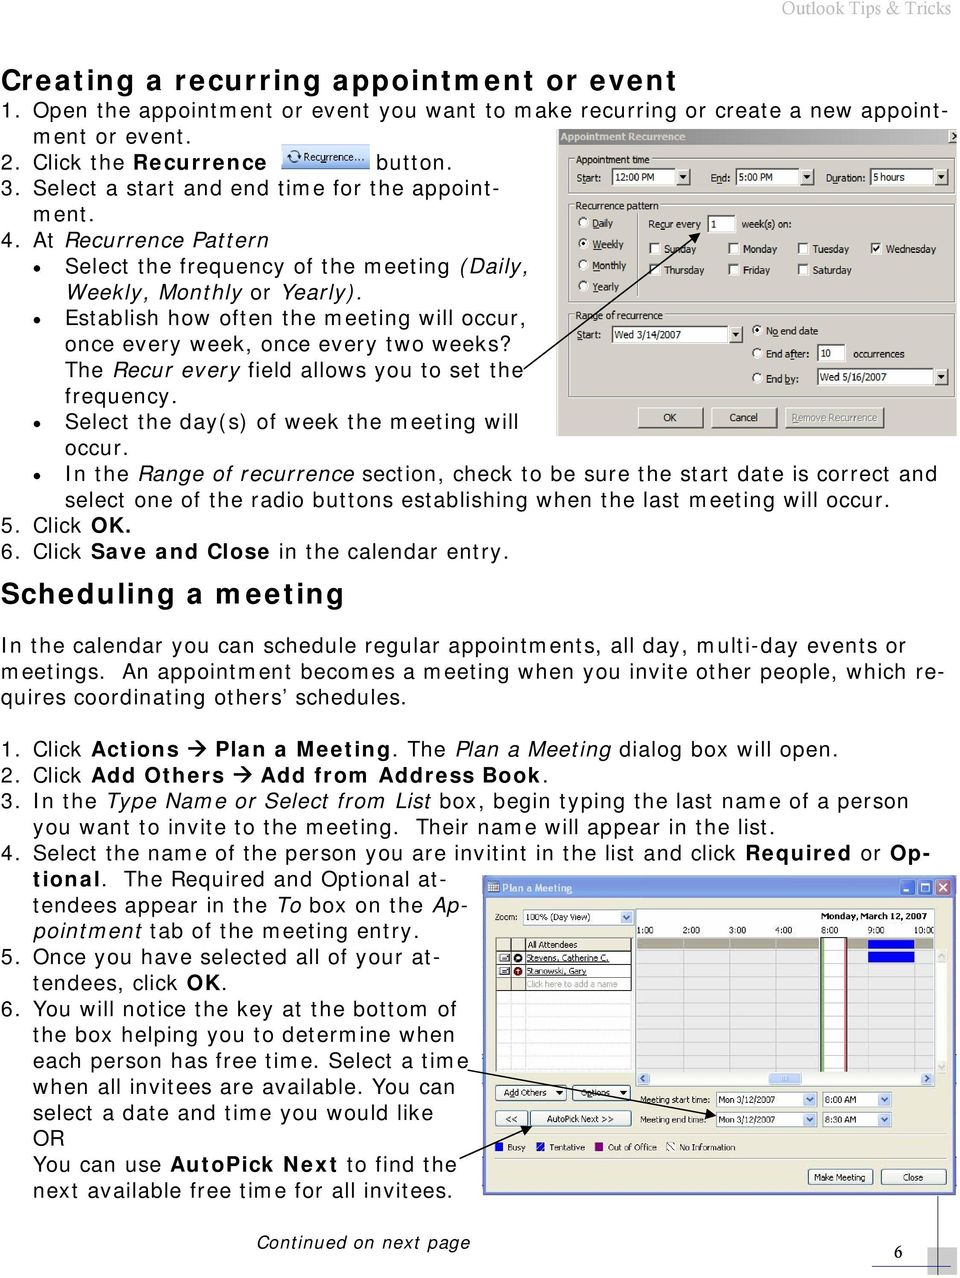 Establish how often the meeting will occur, once every week, once every two weeks? The Recur every field allows you to set the frequency. Select the day(s) of week the meeting will occur.